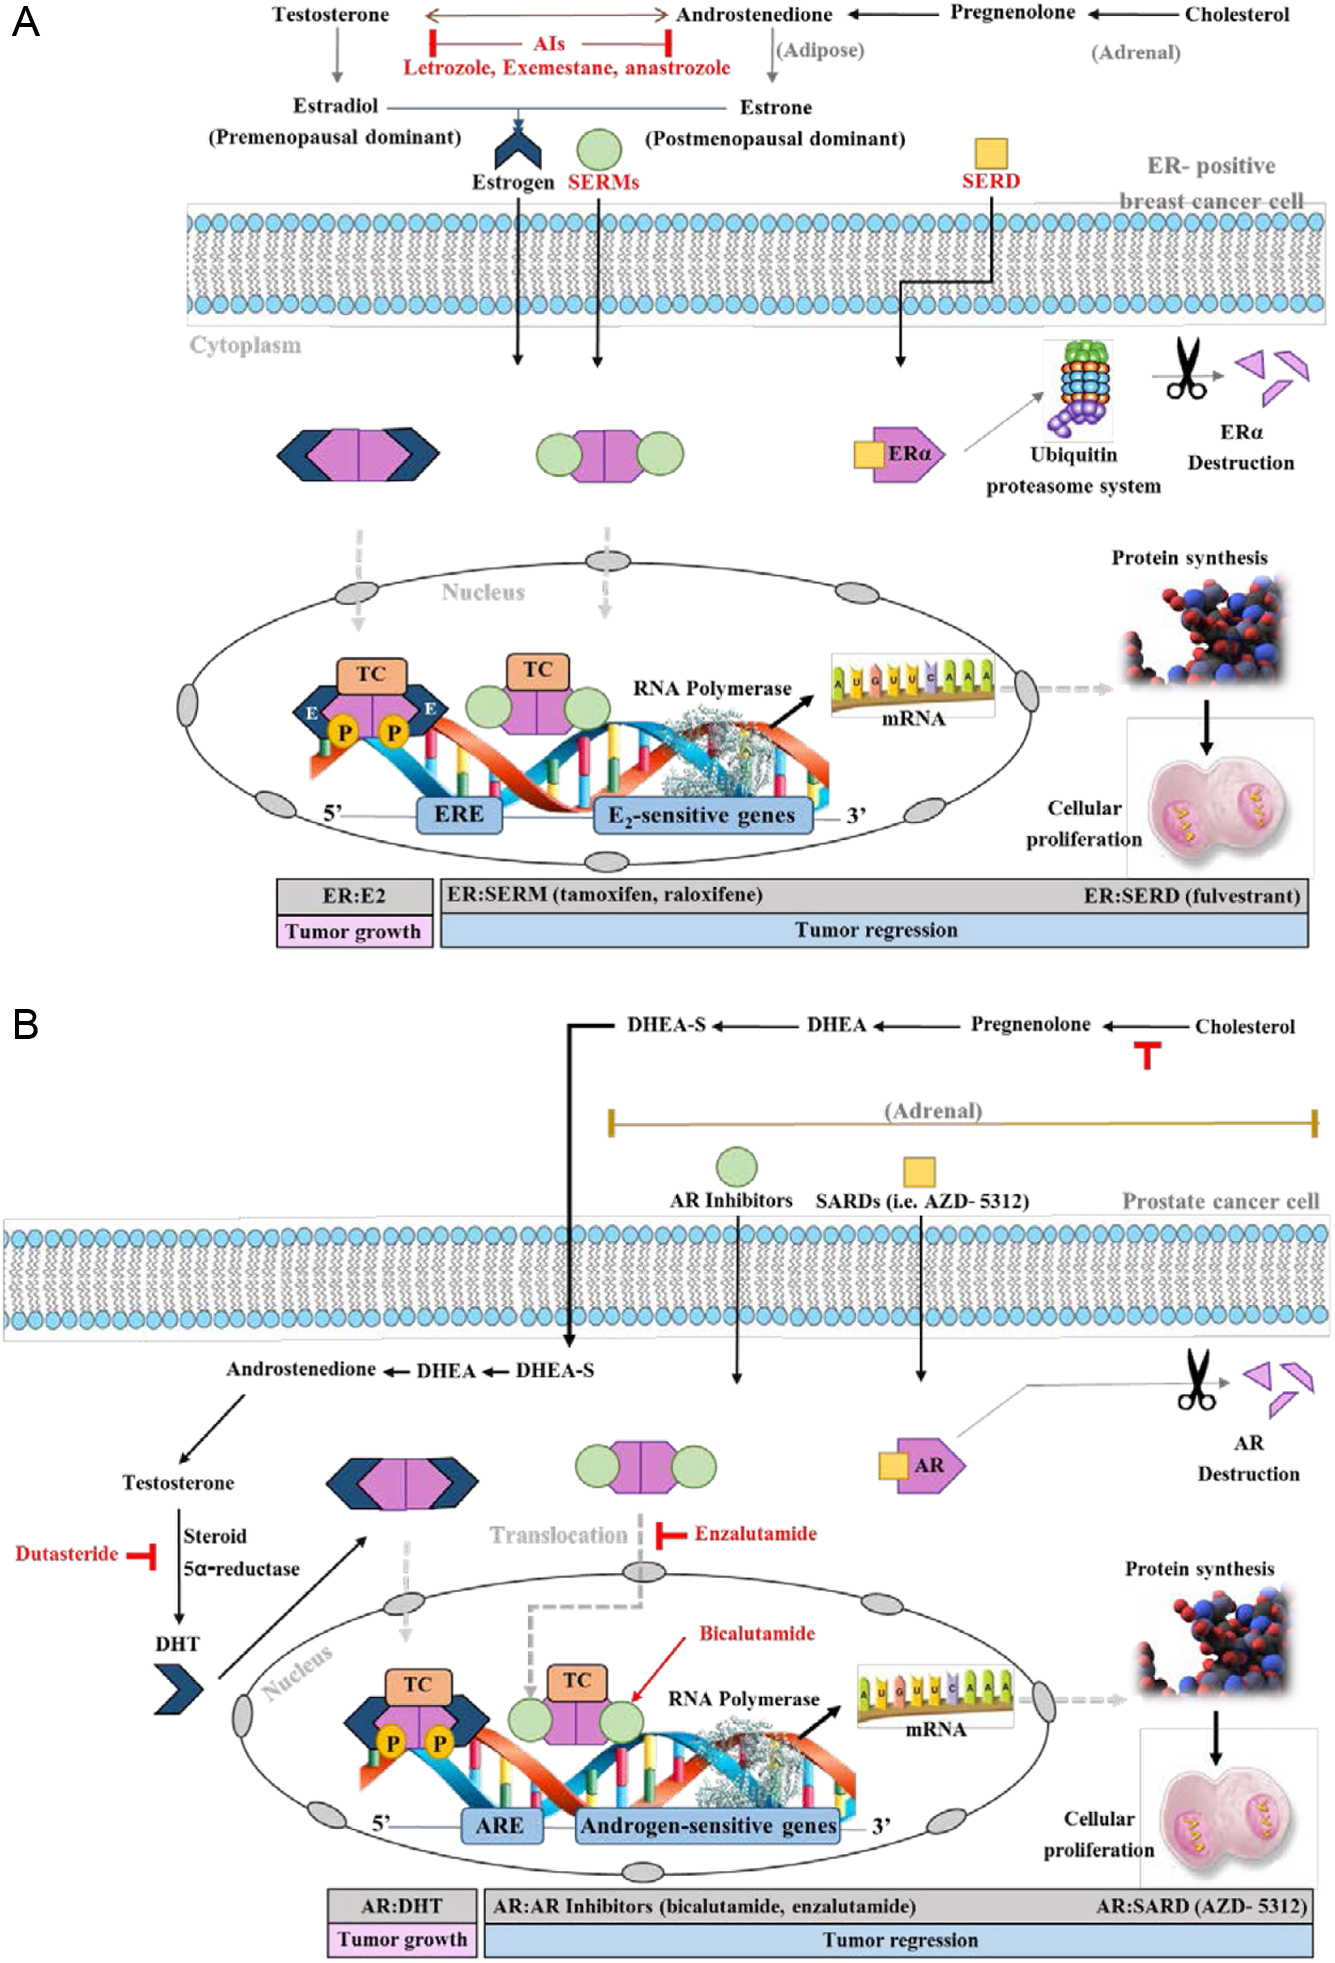 A unifying biology of sex steroid-induced apoptosis in